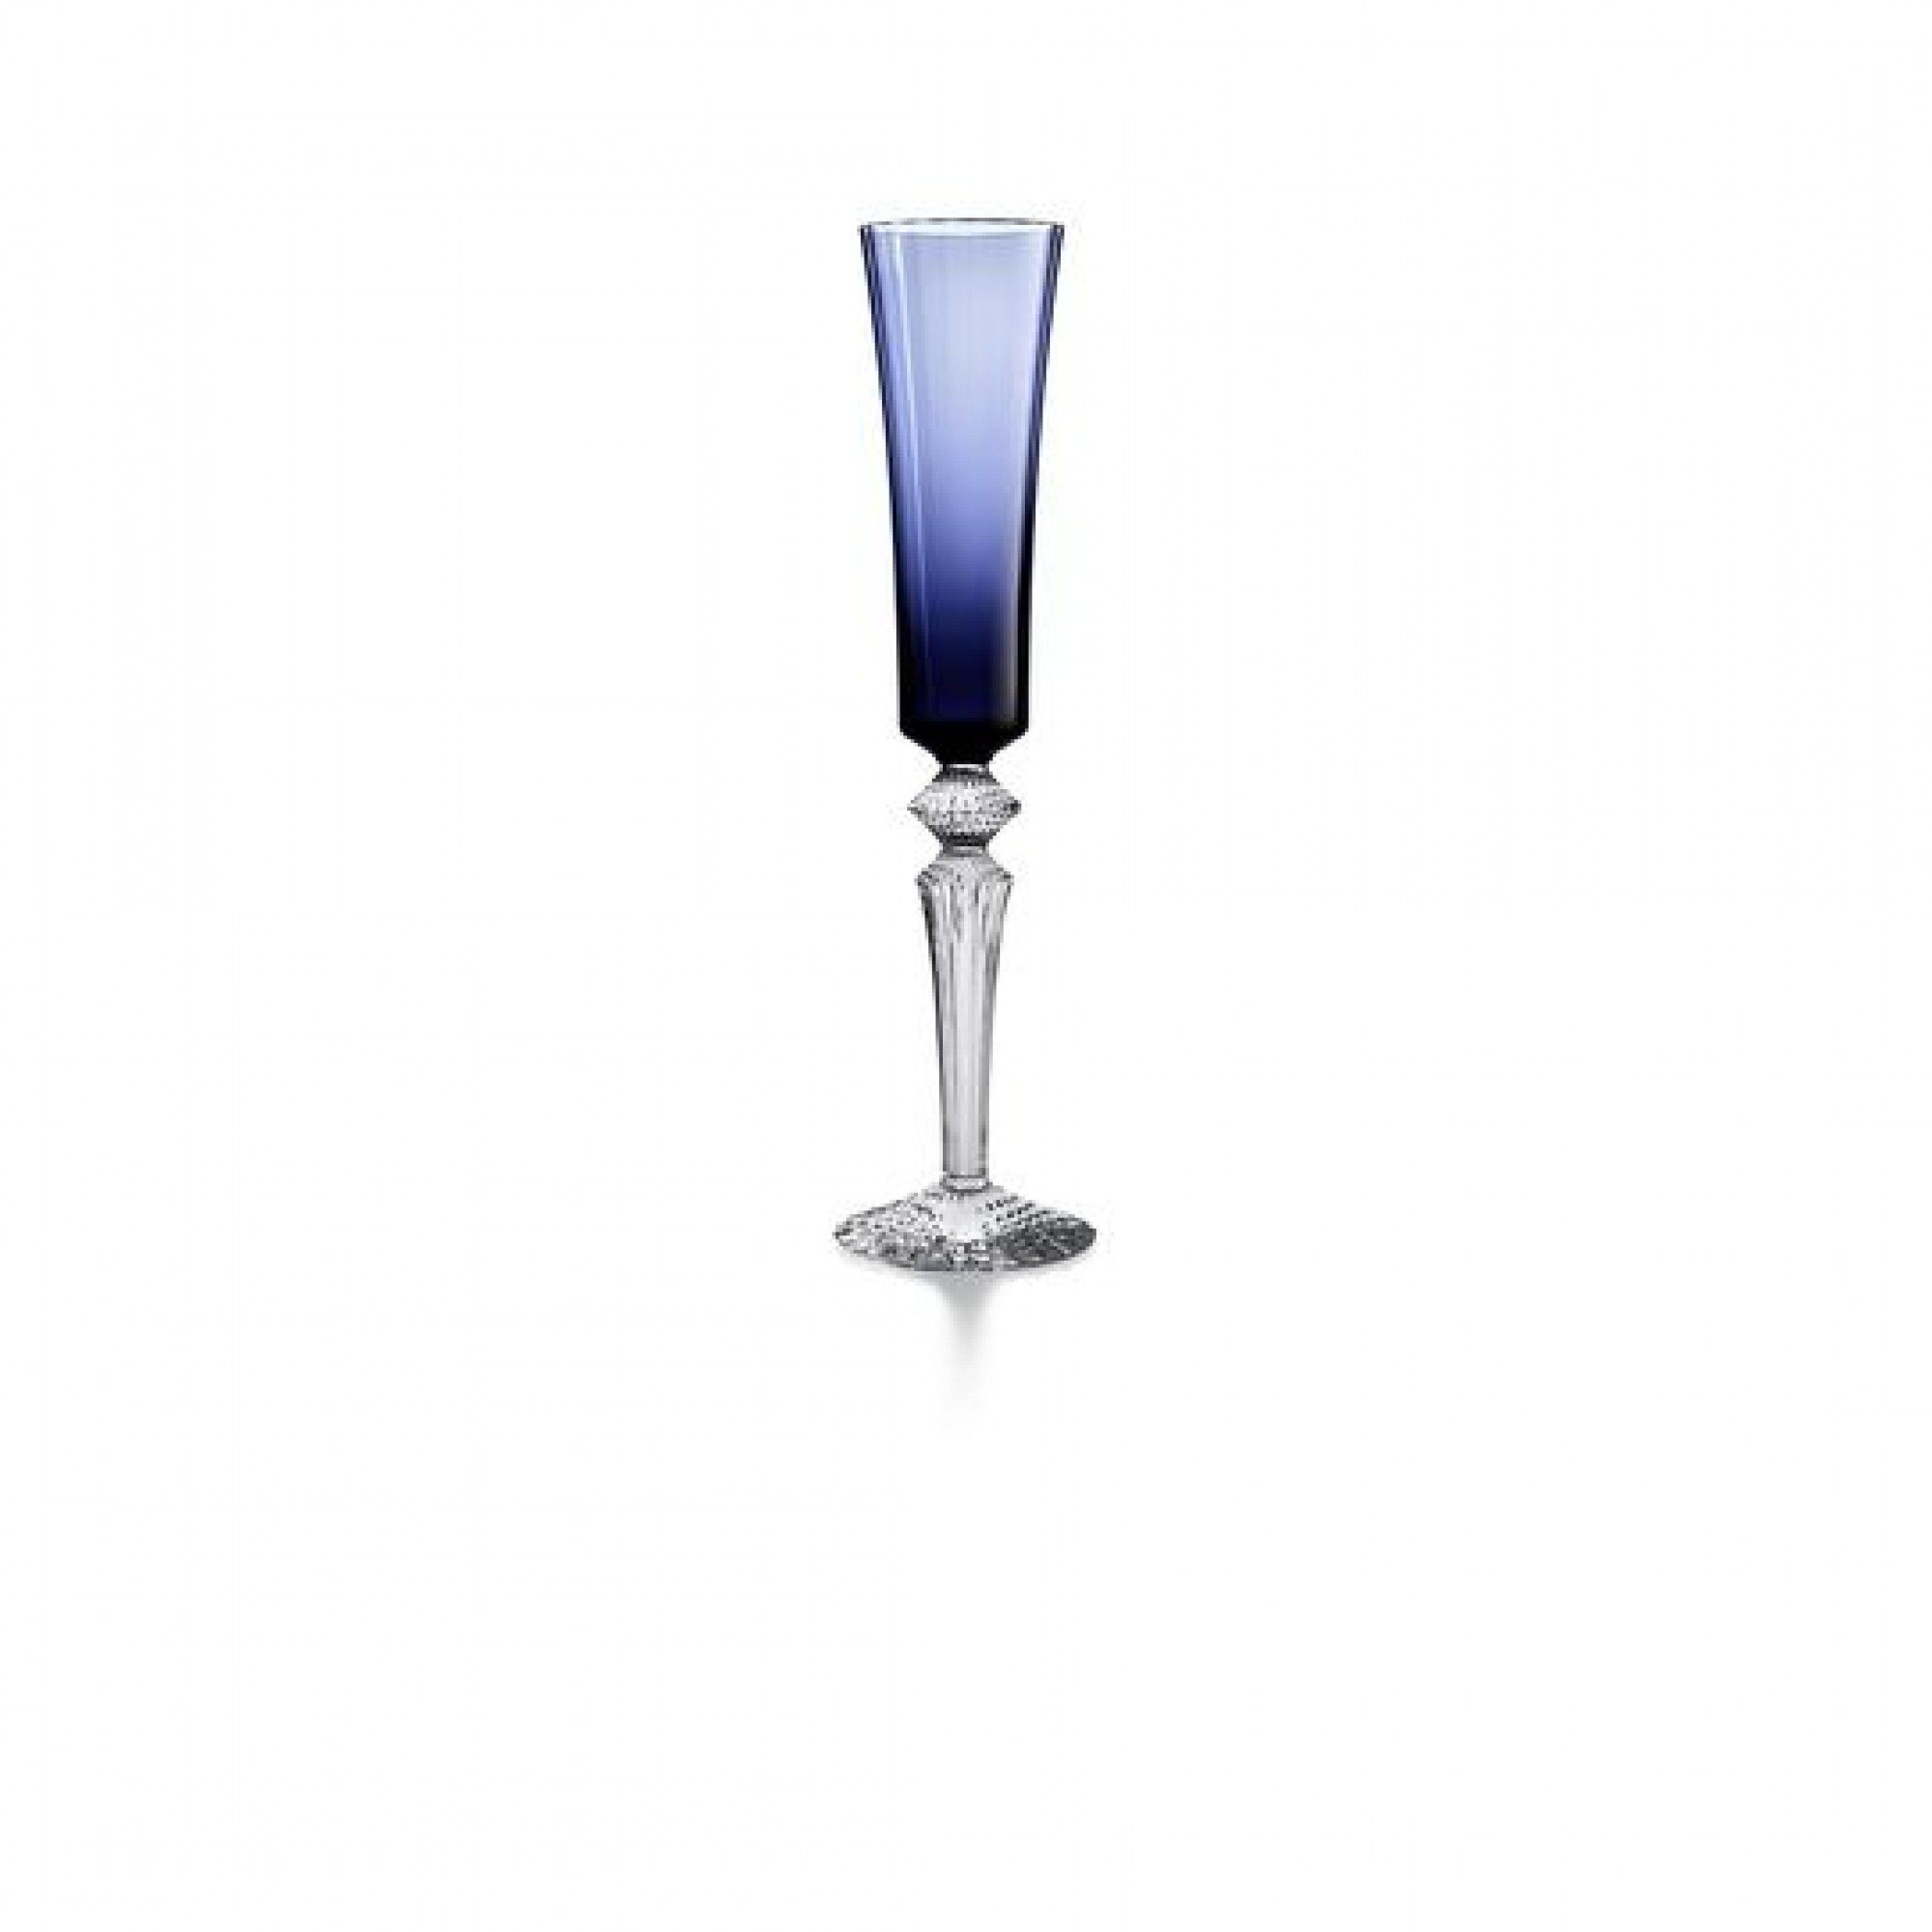 Baccarat Mille Nuits Flutissimo Midnight Baccarat Brands